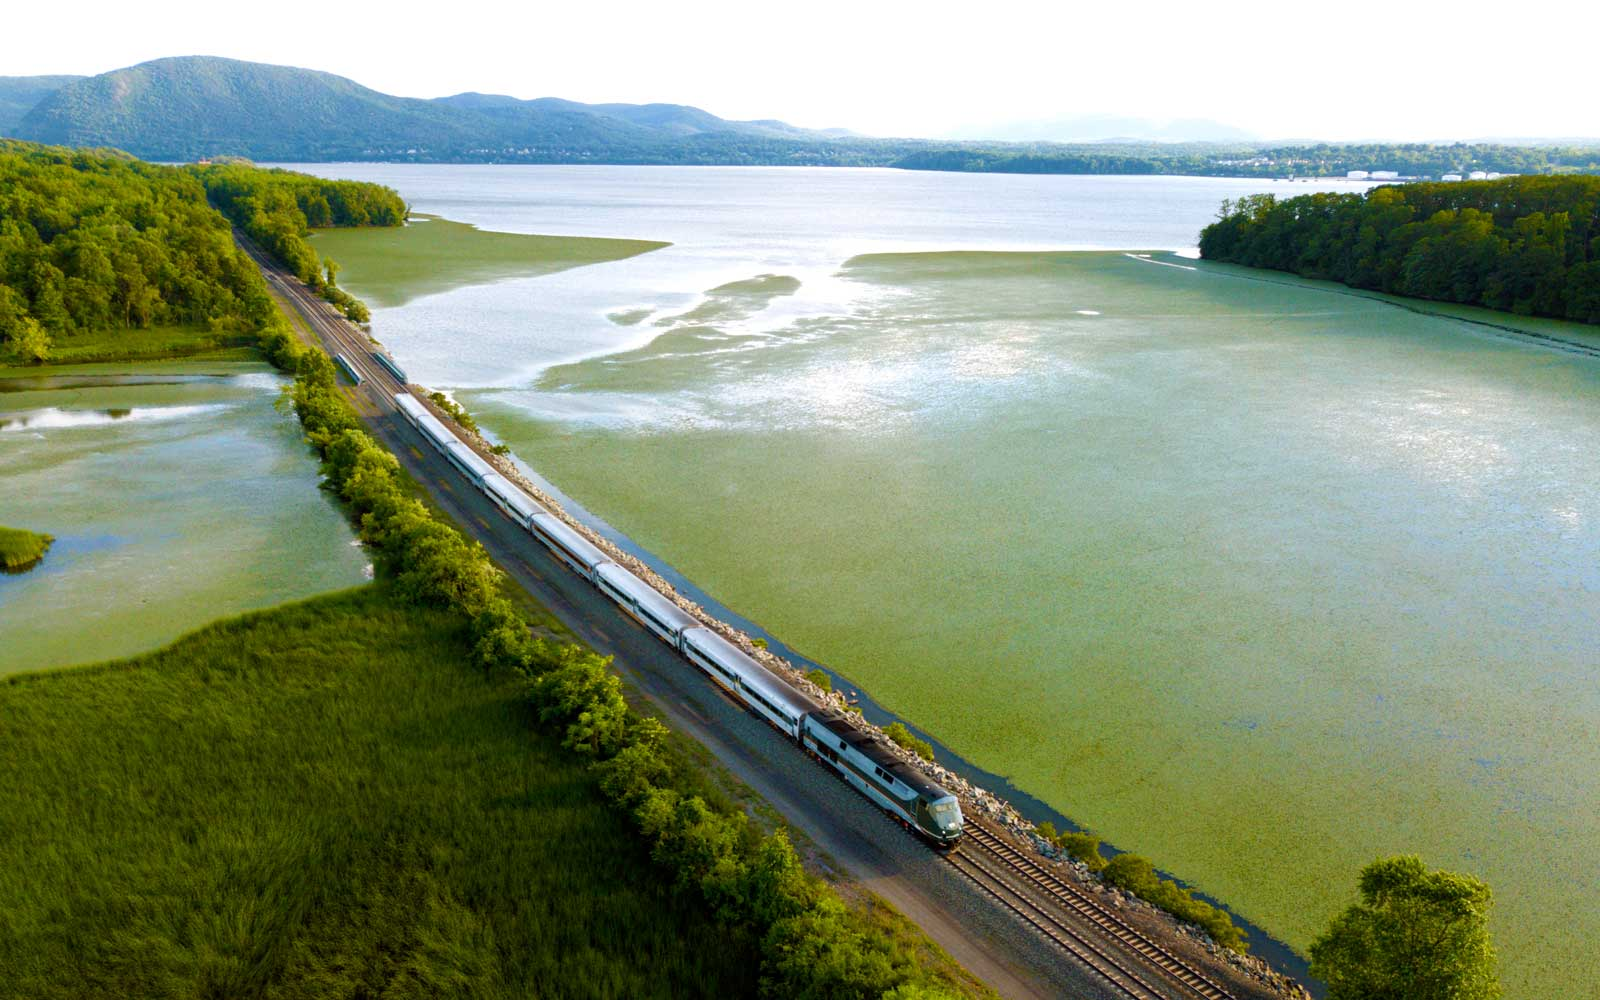 train riding past body of water